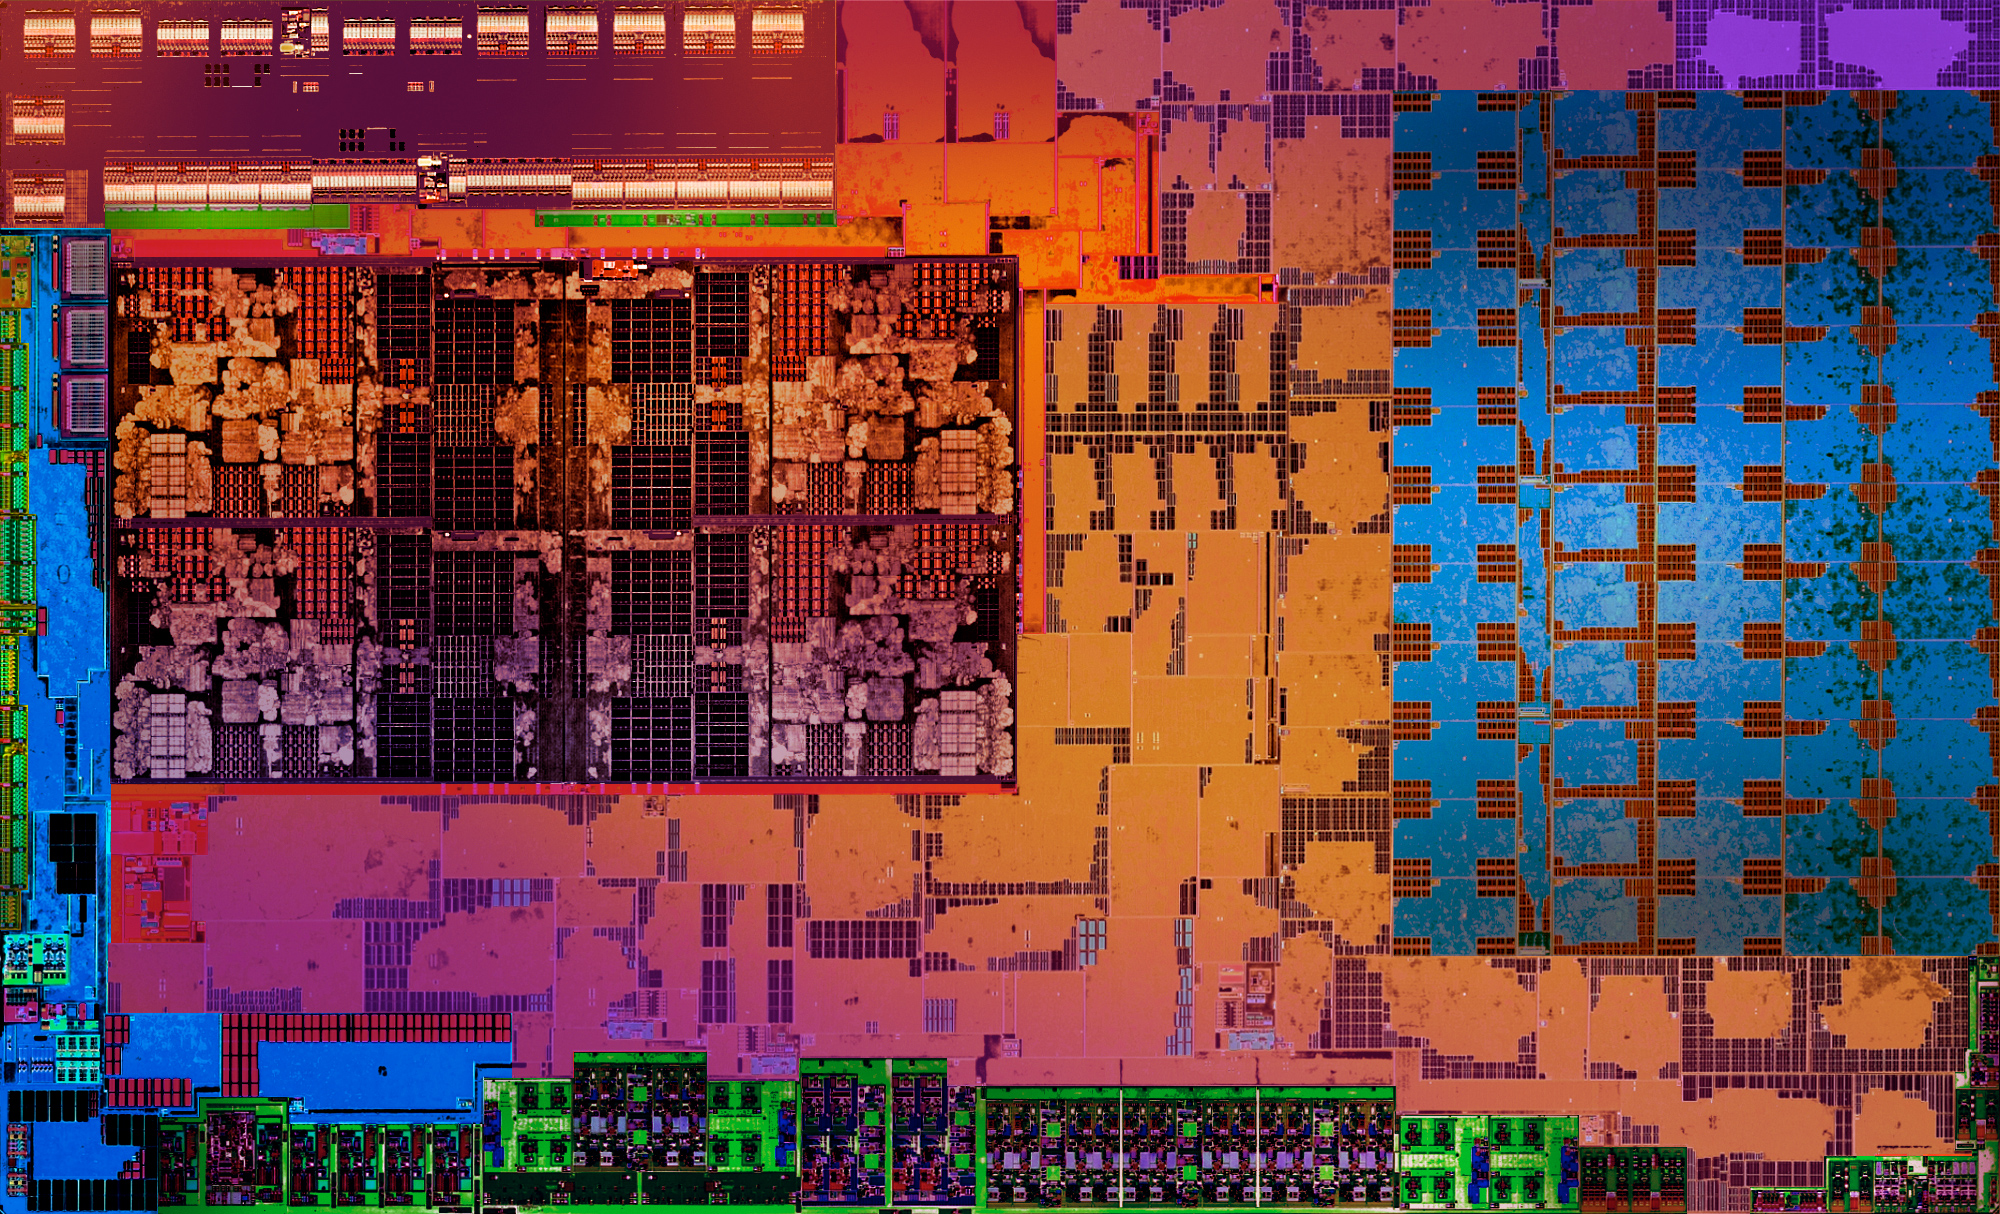 AMD Takes On Intel With New Ryzen Processors For Laptops